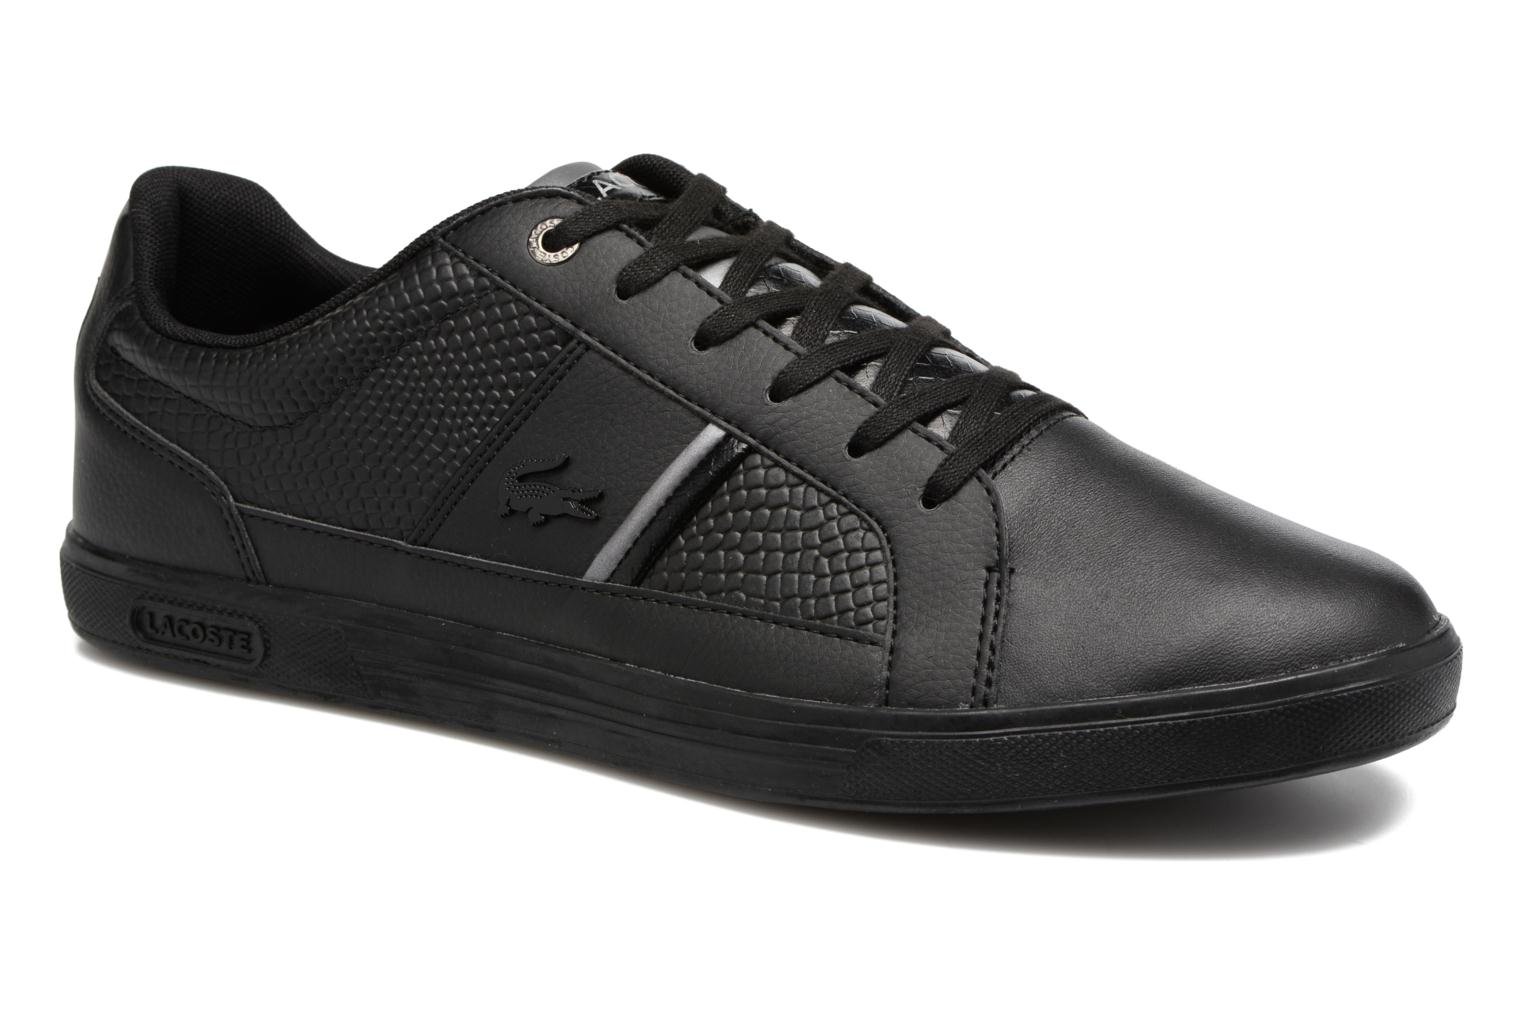 Lacoste Chaussures Europa 417 1 Lacoste cETnCu